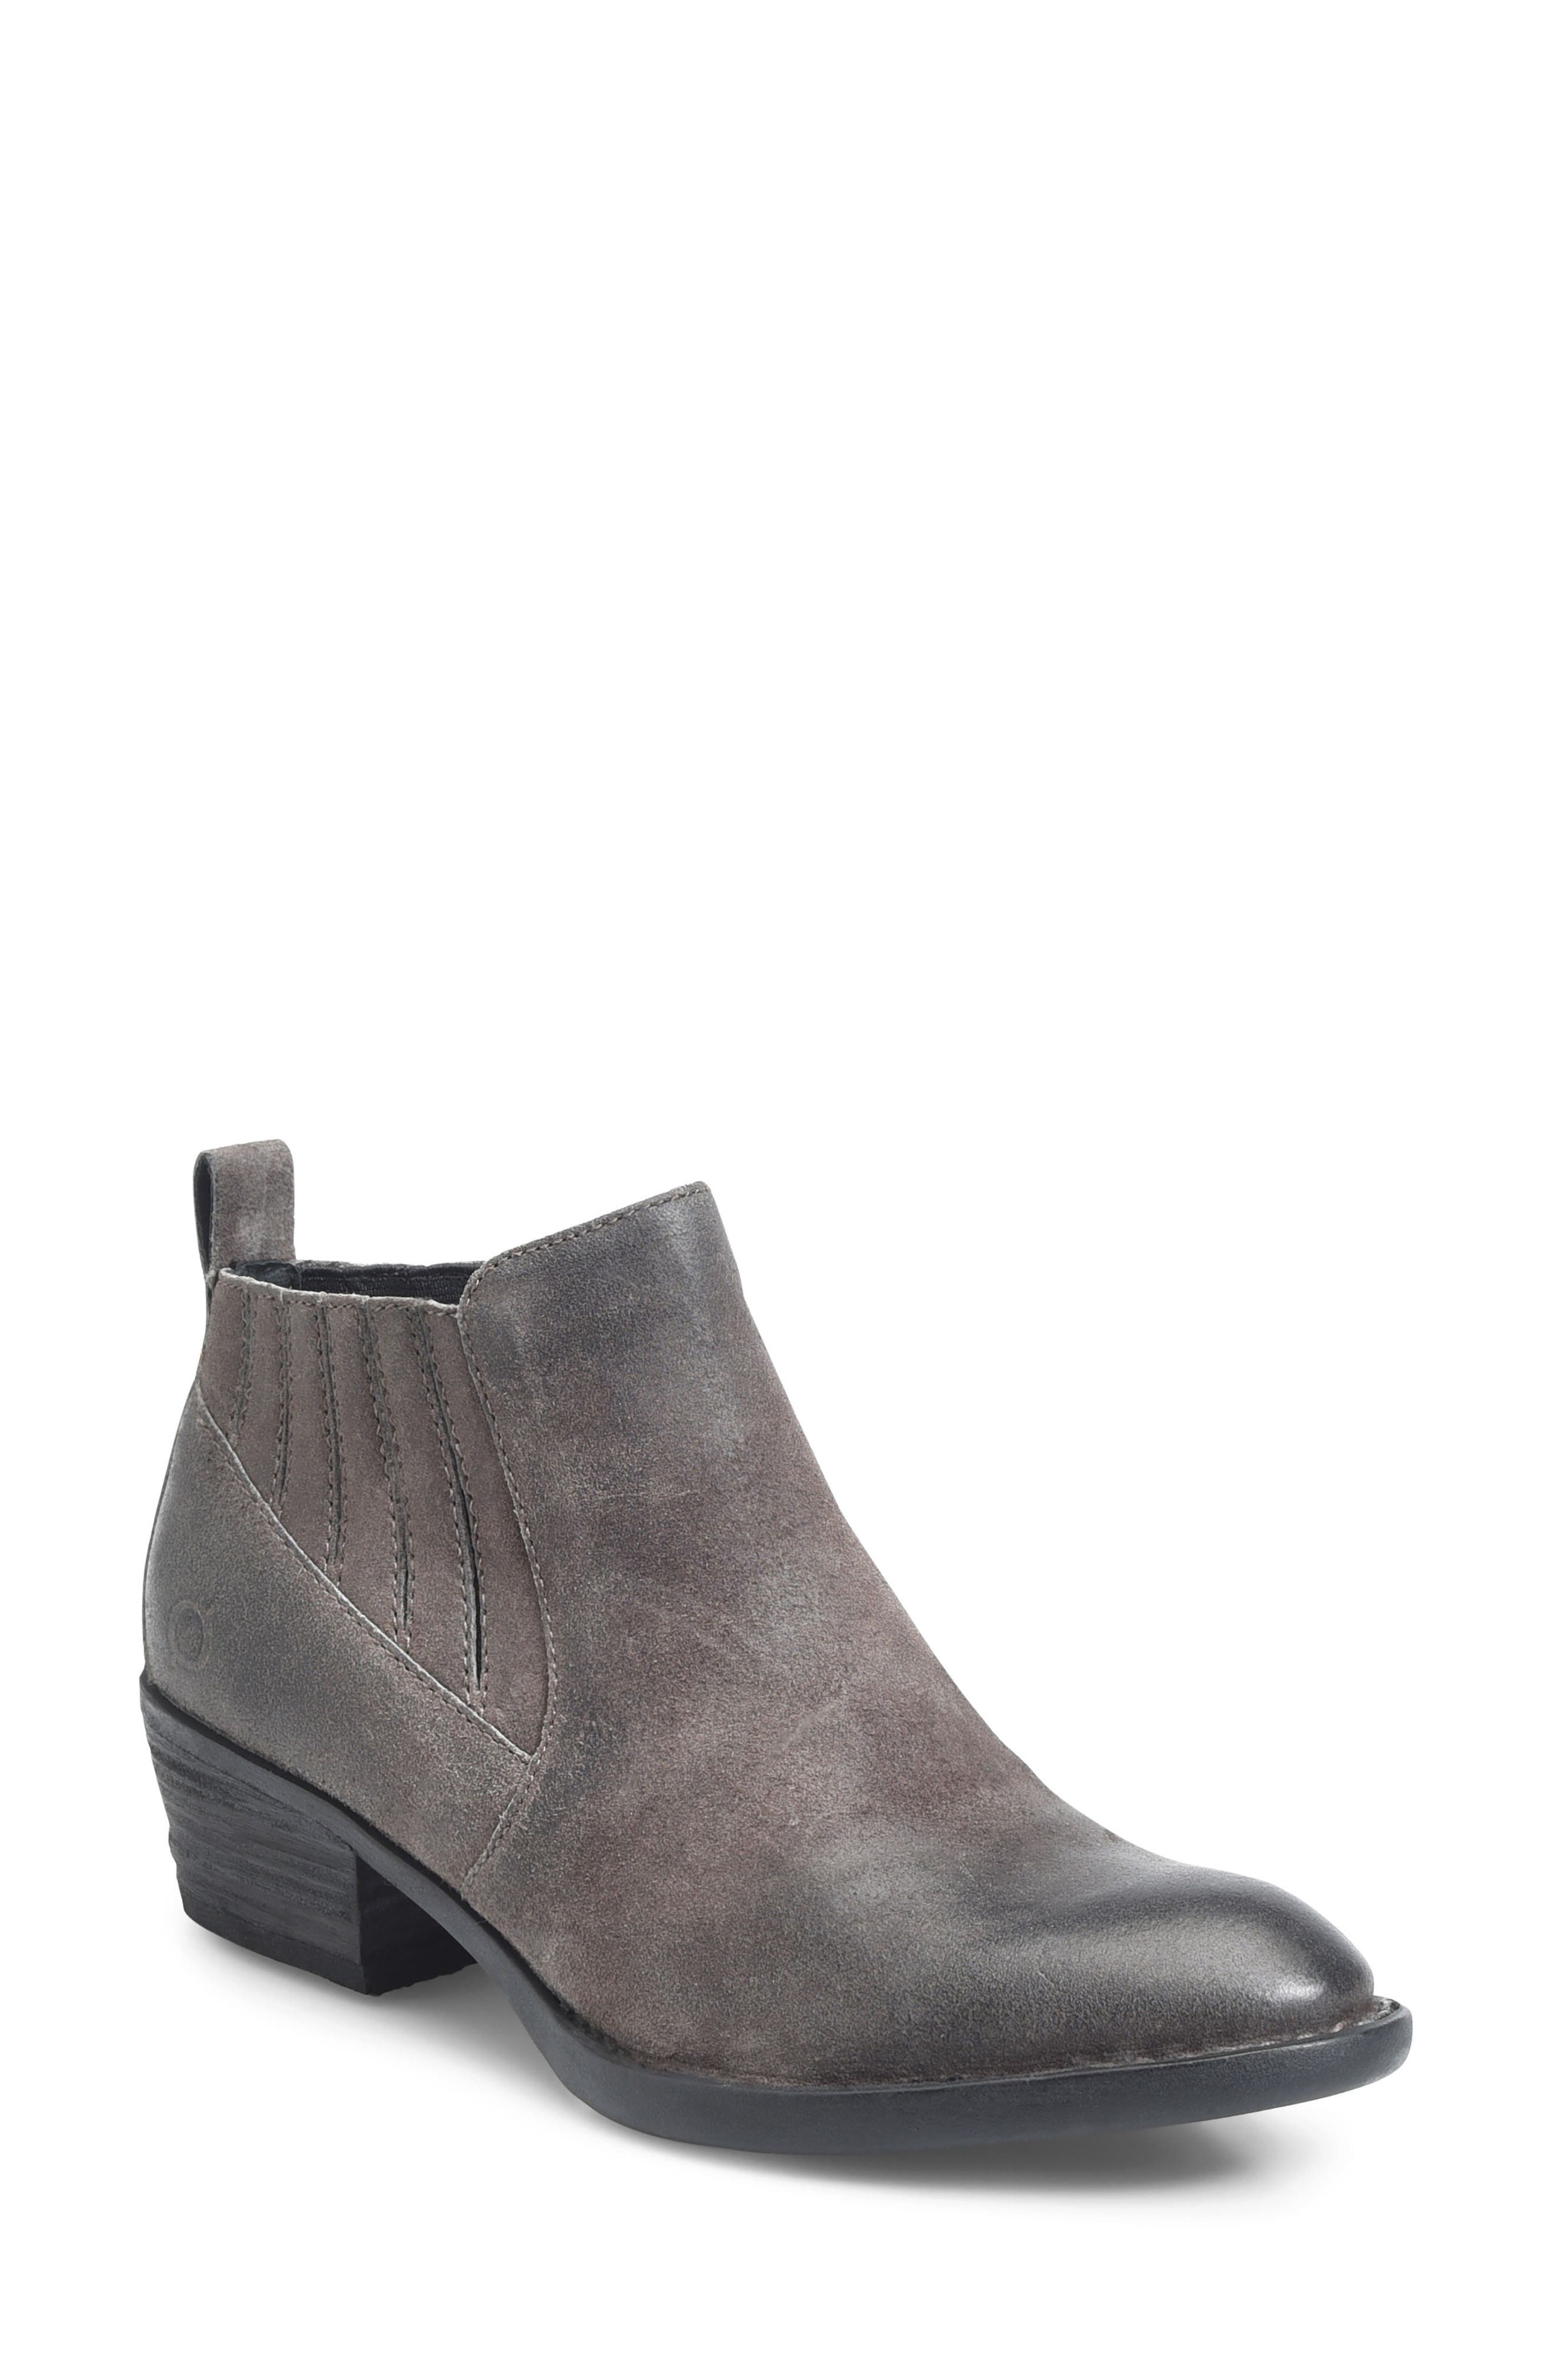 Beebe Bootie,                         Main,                         color, Grey Distressed Leather